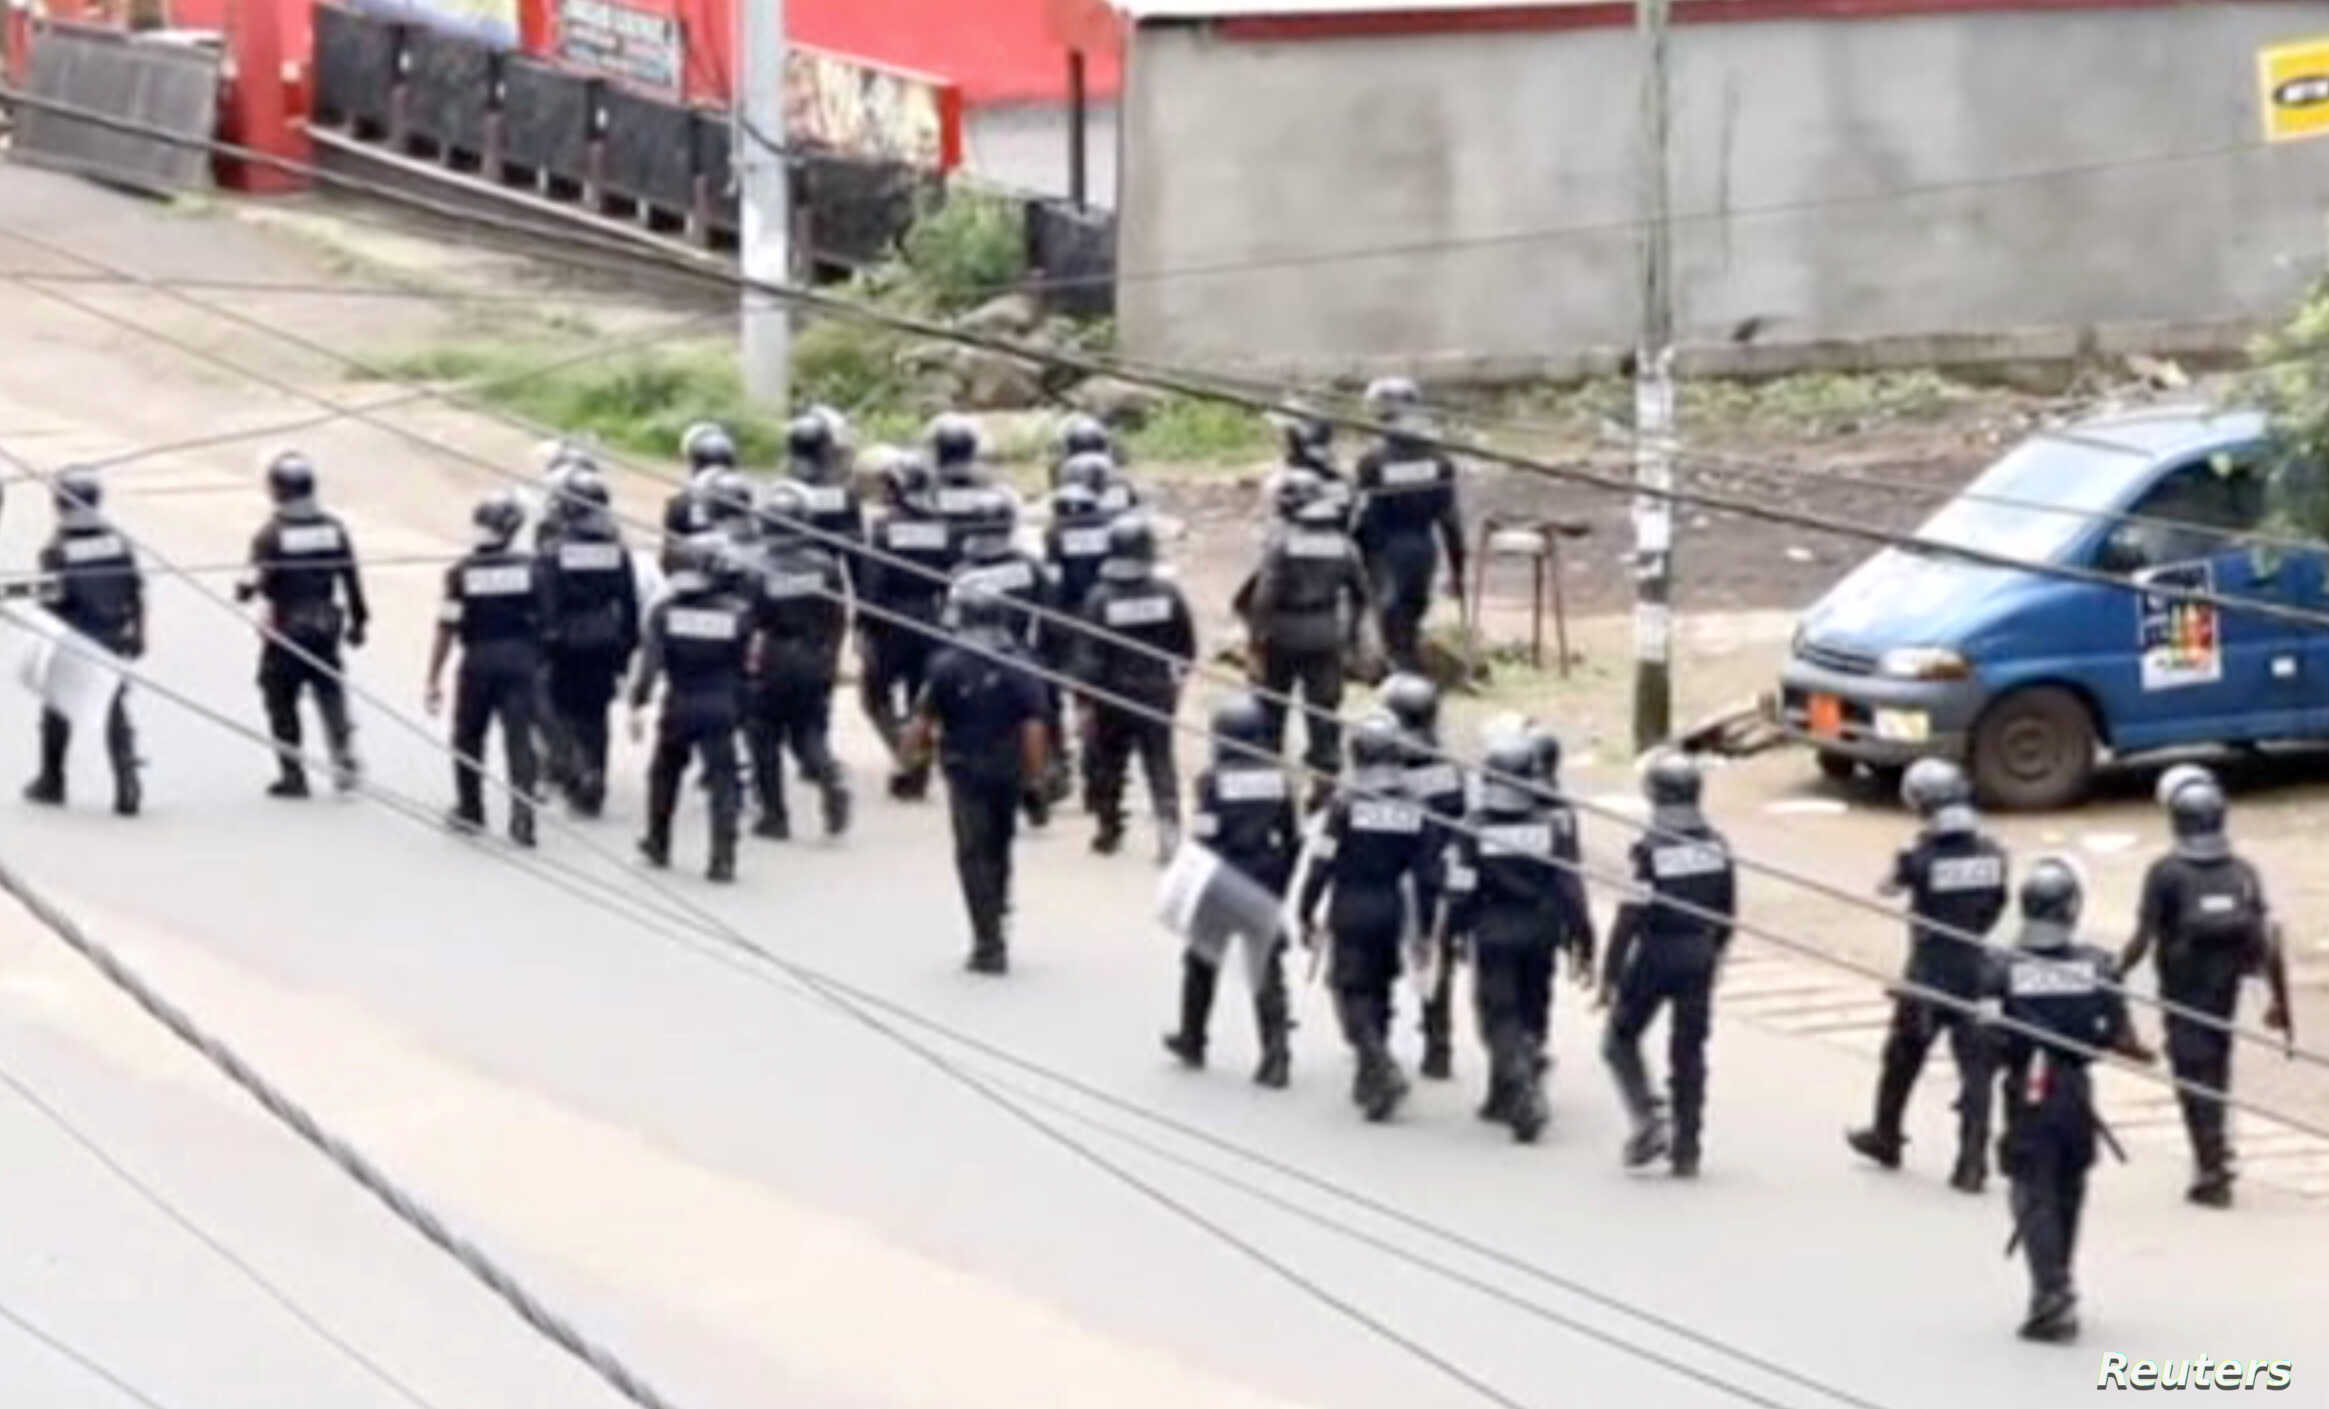 FILE - A still image taken from a video shows riot police walkin along a street in the English-speaking city of Buea, Cameroon, Oct. 1, 2017.